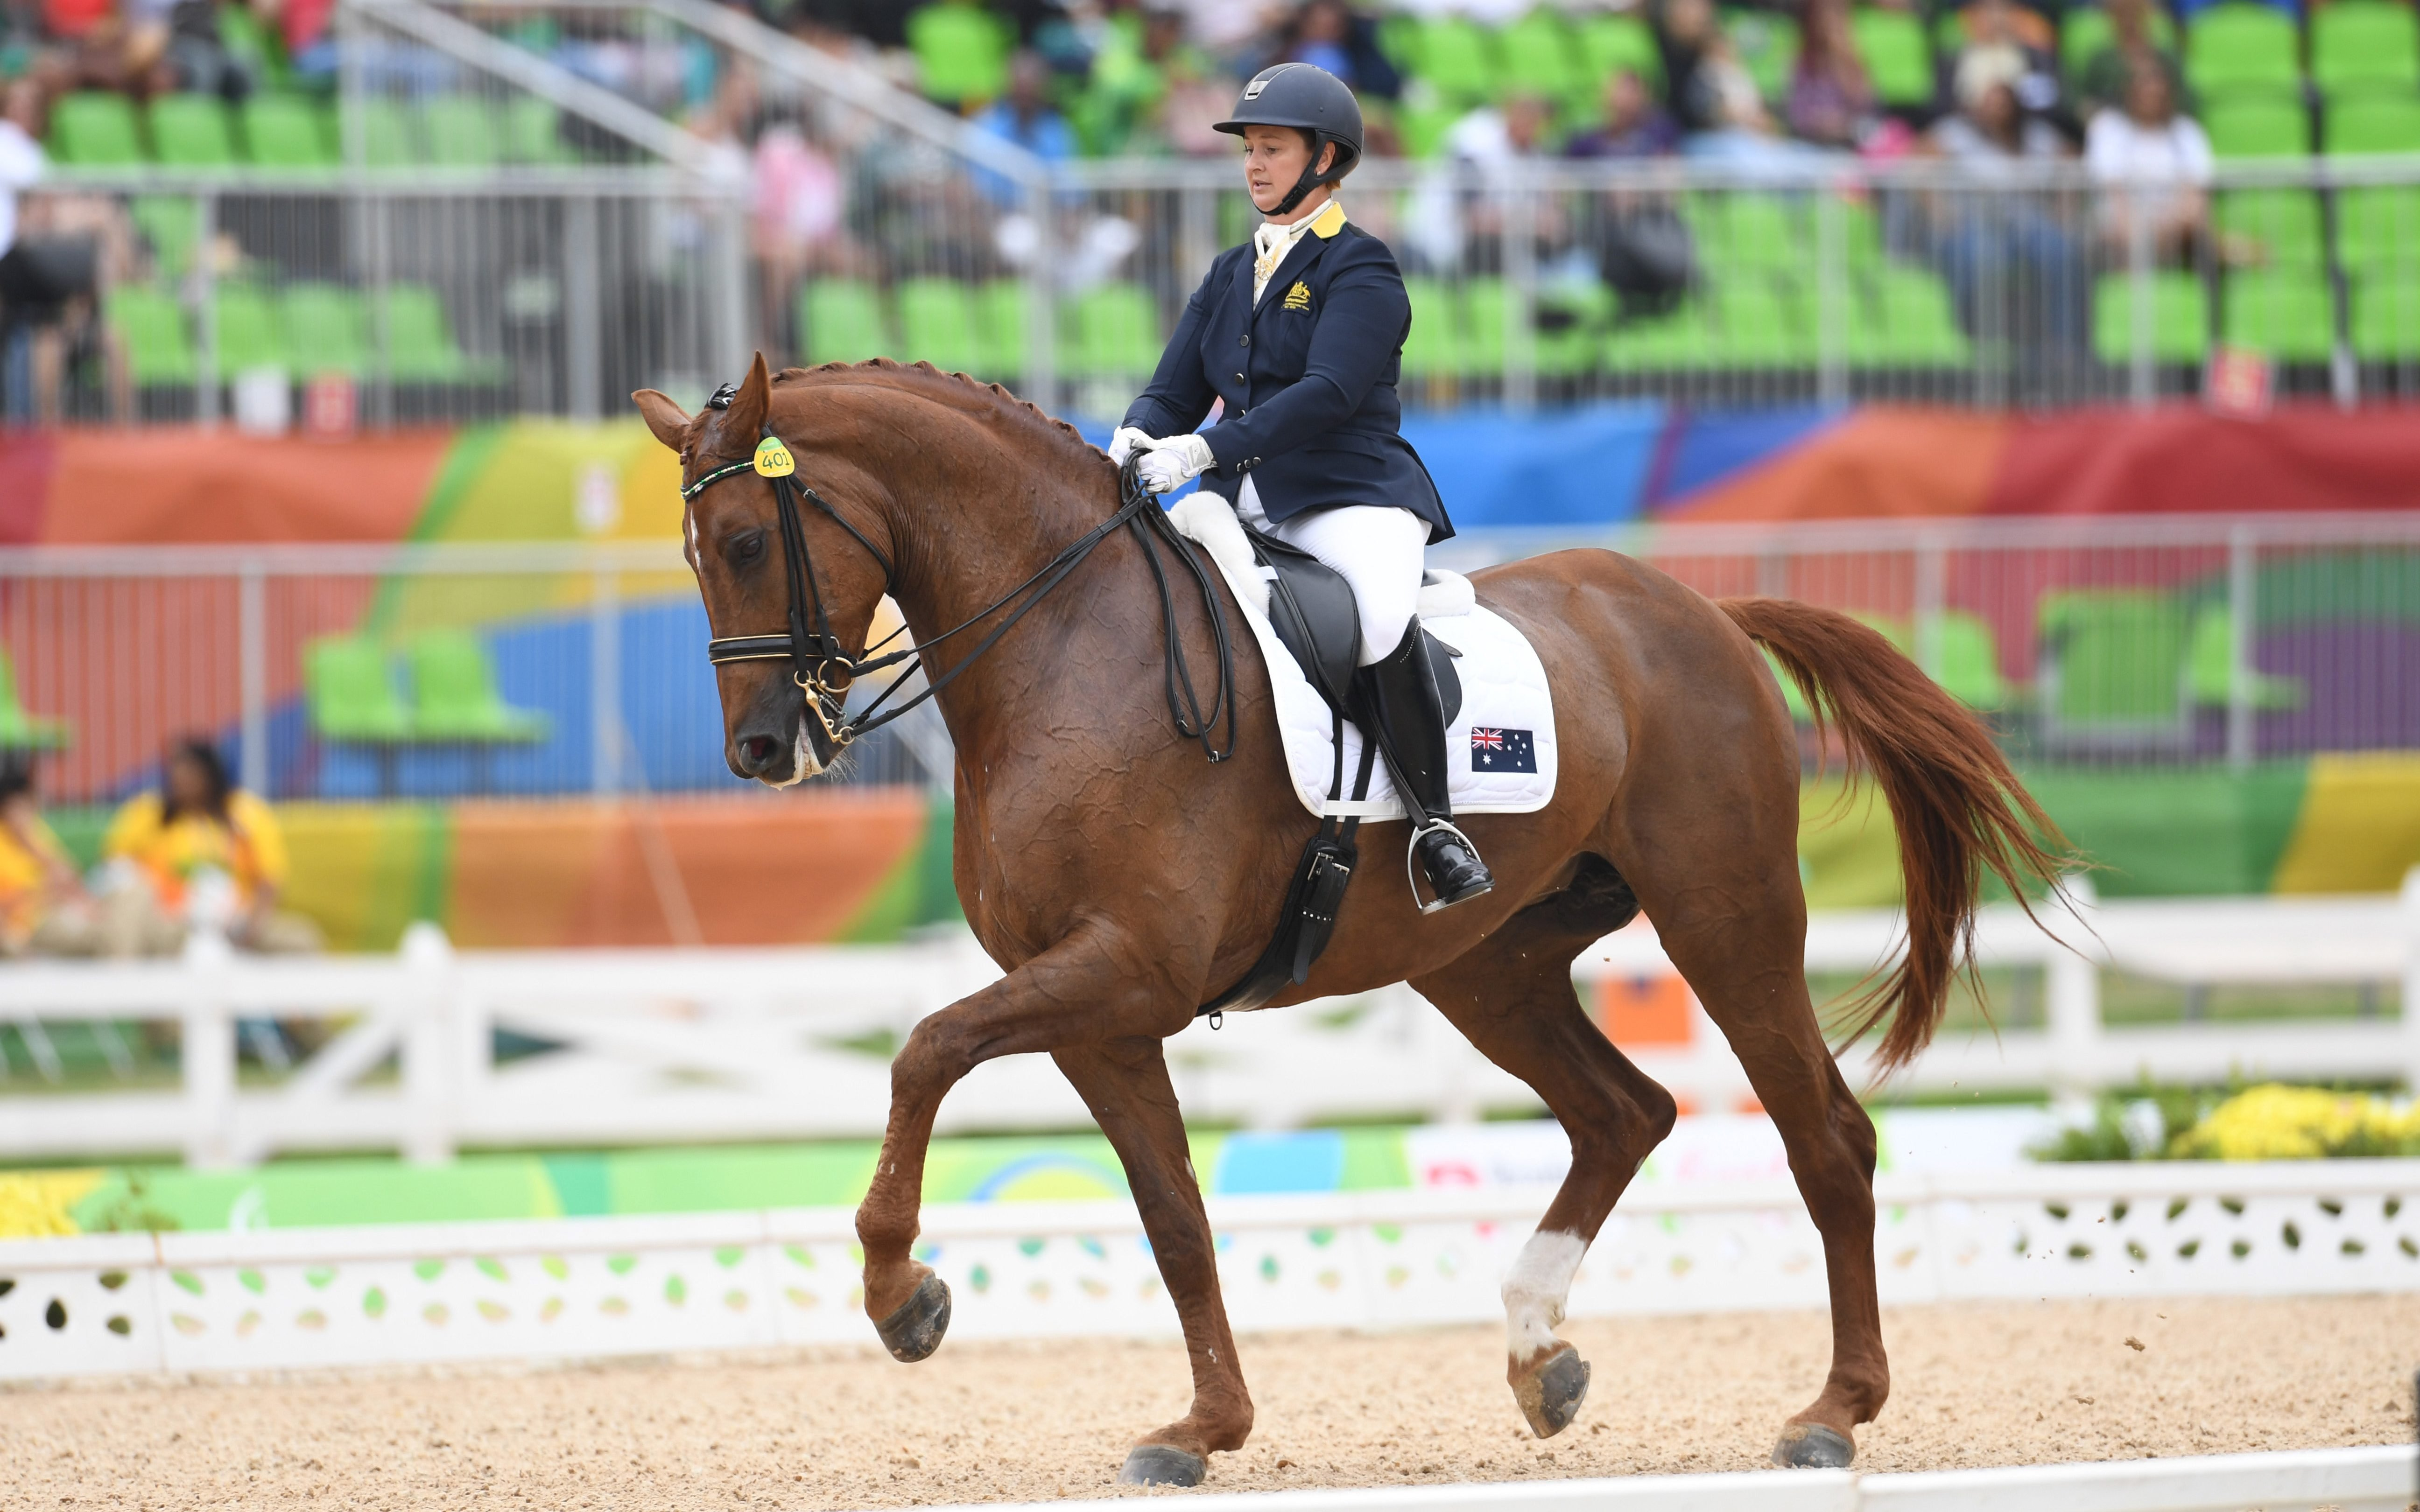 Para-dressage team test opens Sydney International Three-Day Event